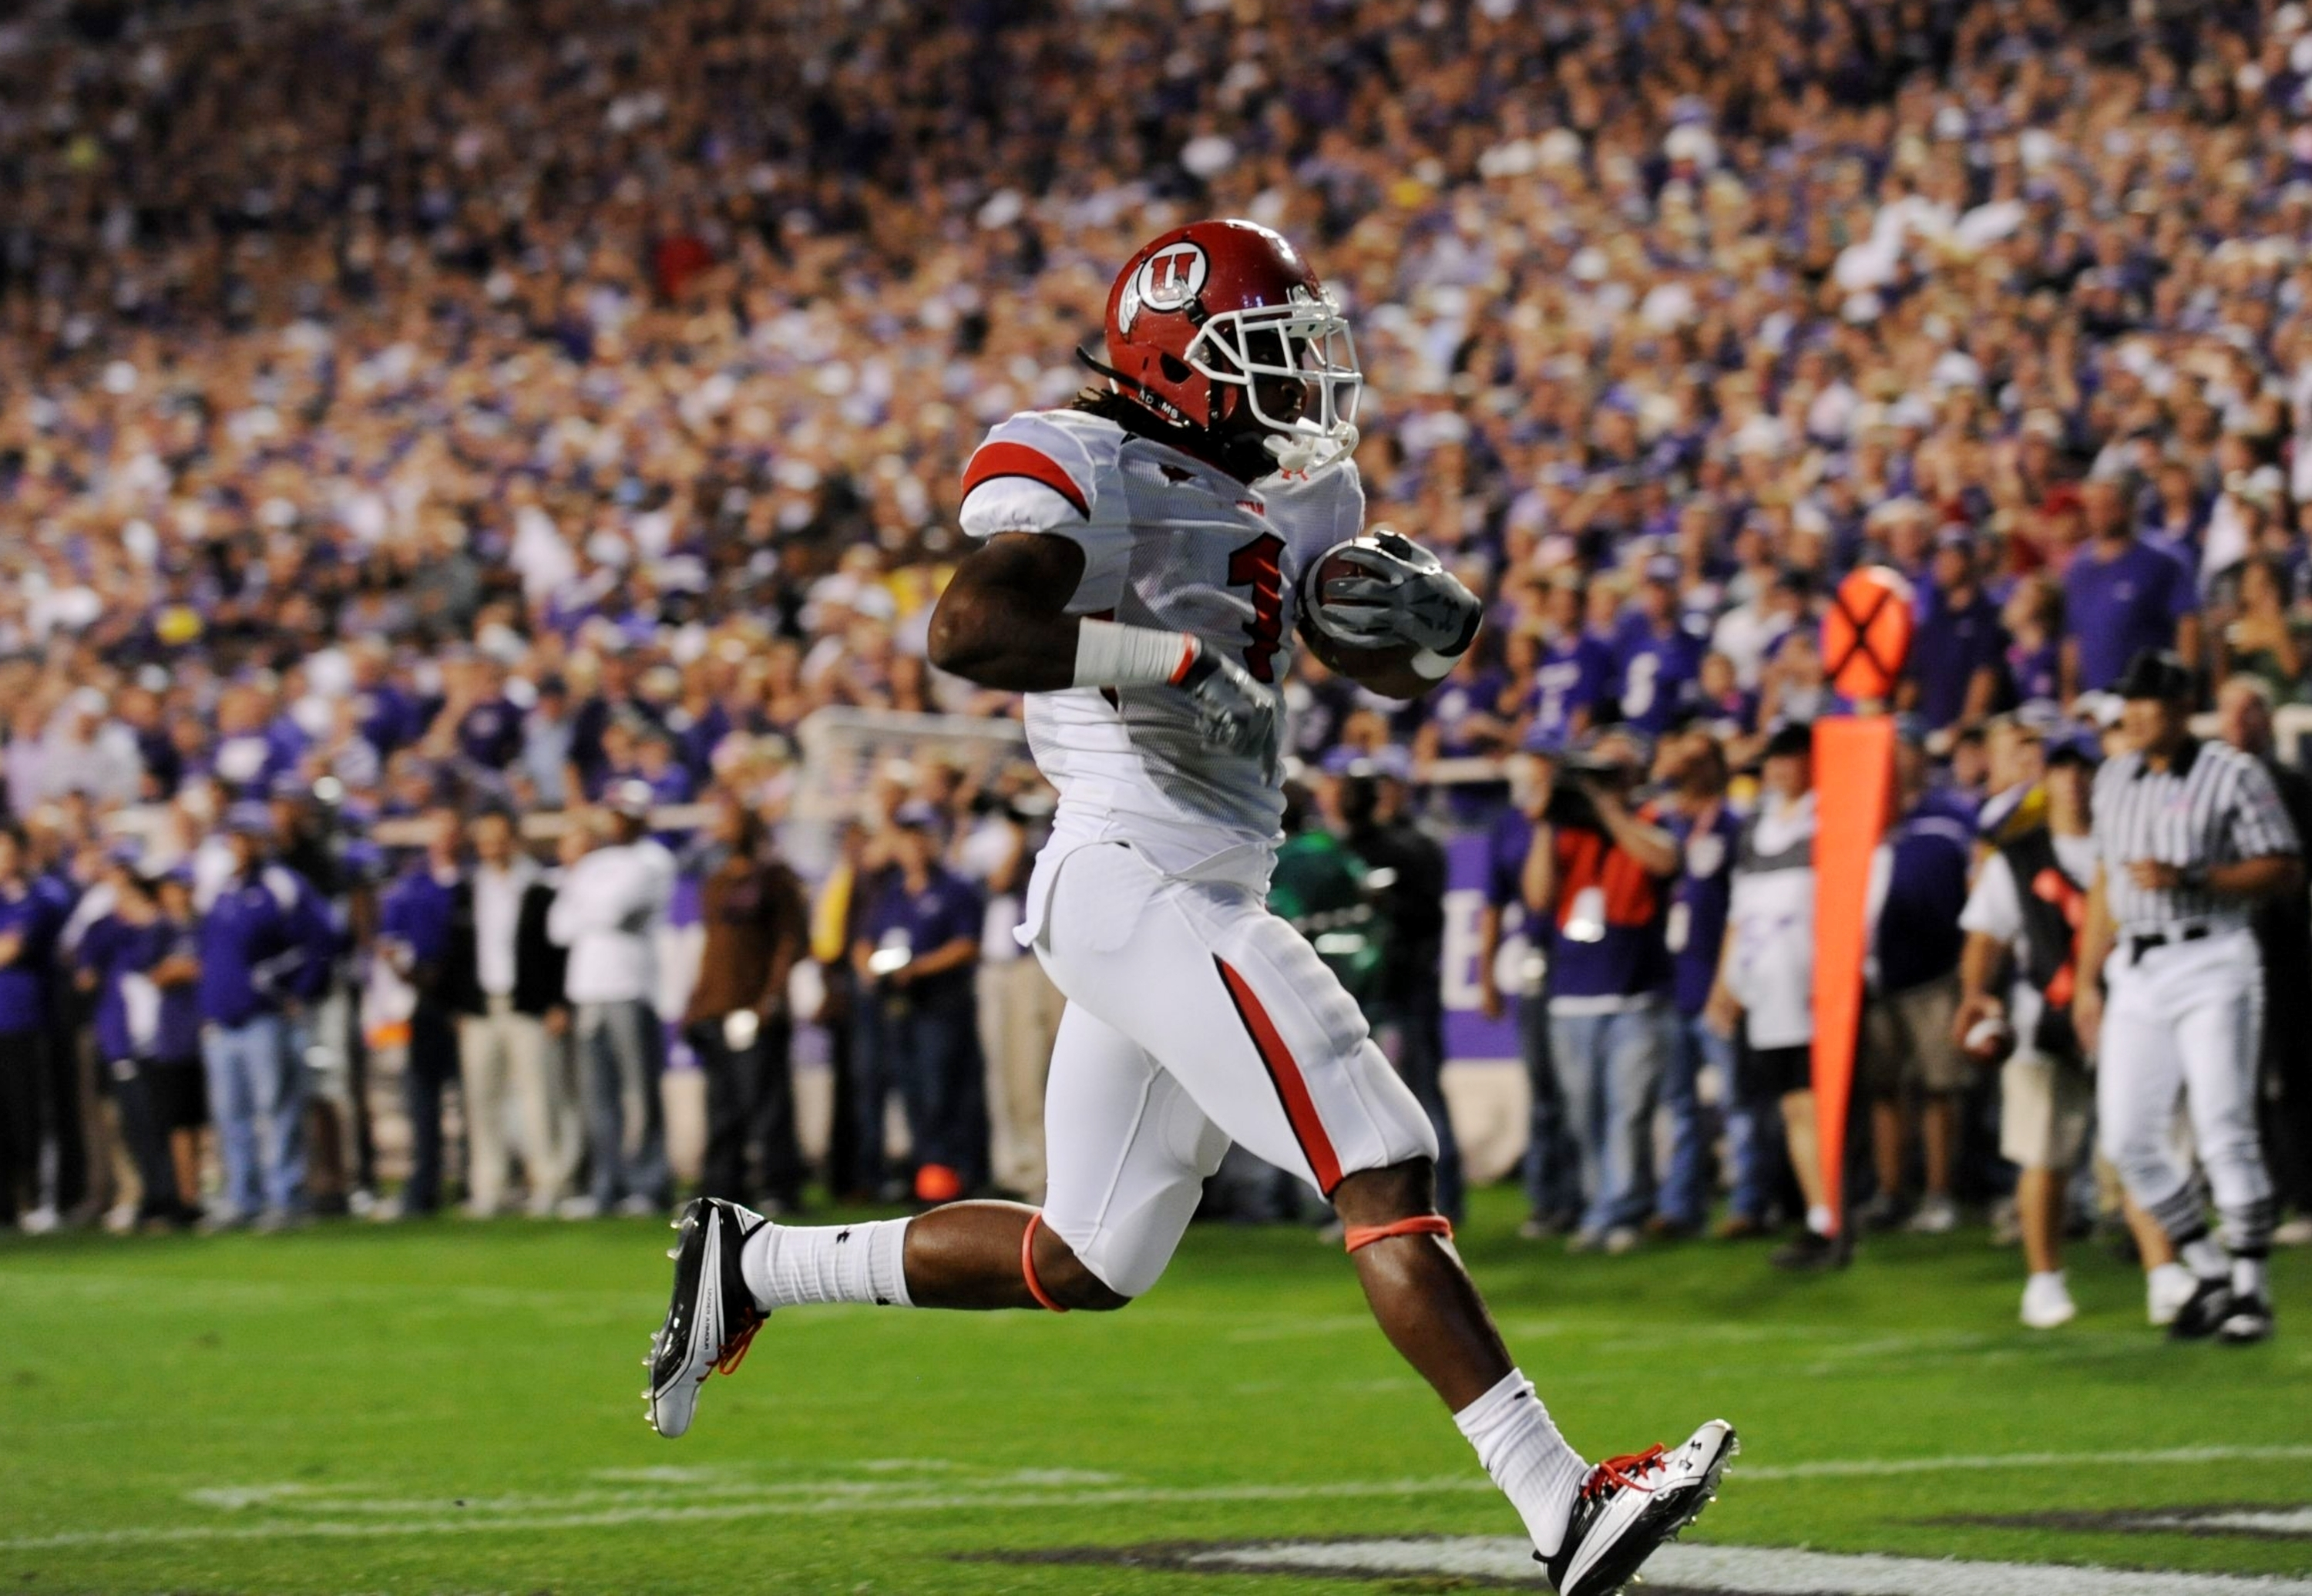 FORT WORTH, TX - NOVEMBER 14:  Shaky Smithson #1 of the Utah Utes scores a touchdown in the first quarter of the game against the TCU Horned Frogs at Amon G. Carter Stadium on November 14, 2009 in Fort Worth, Texas.  (Photo by Ronald Martinez/Getty Images